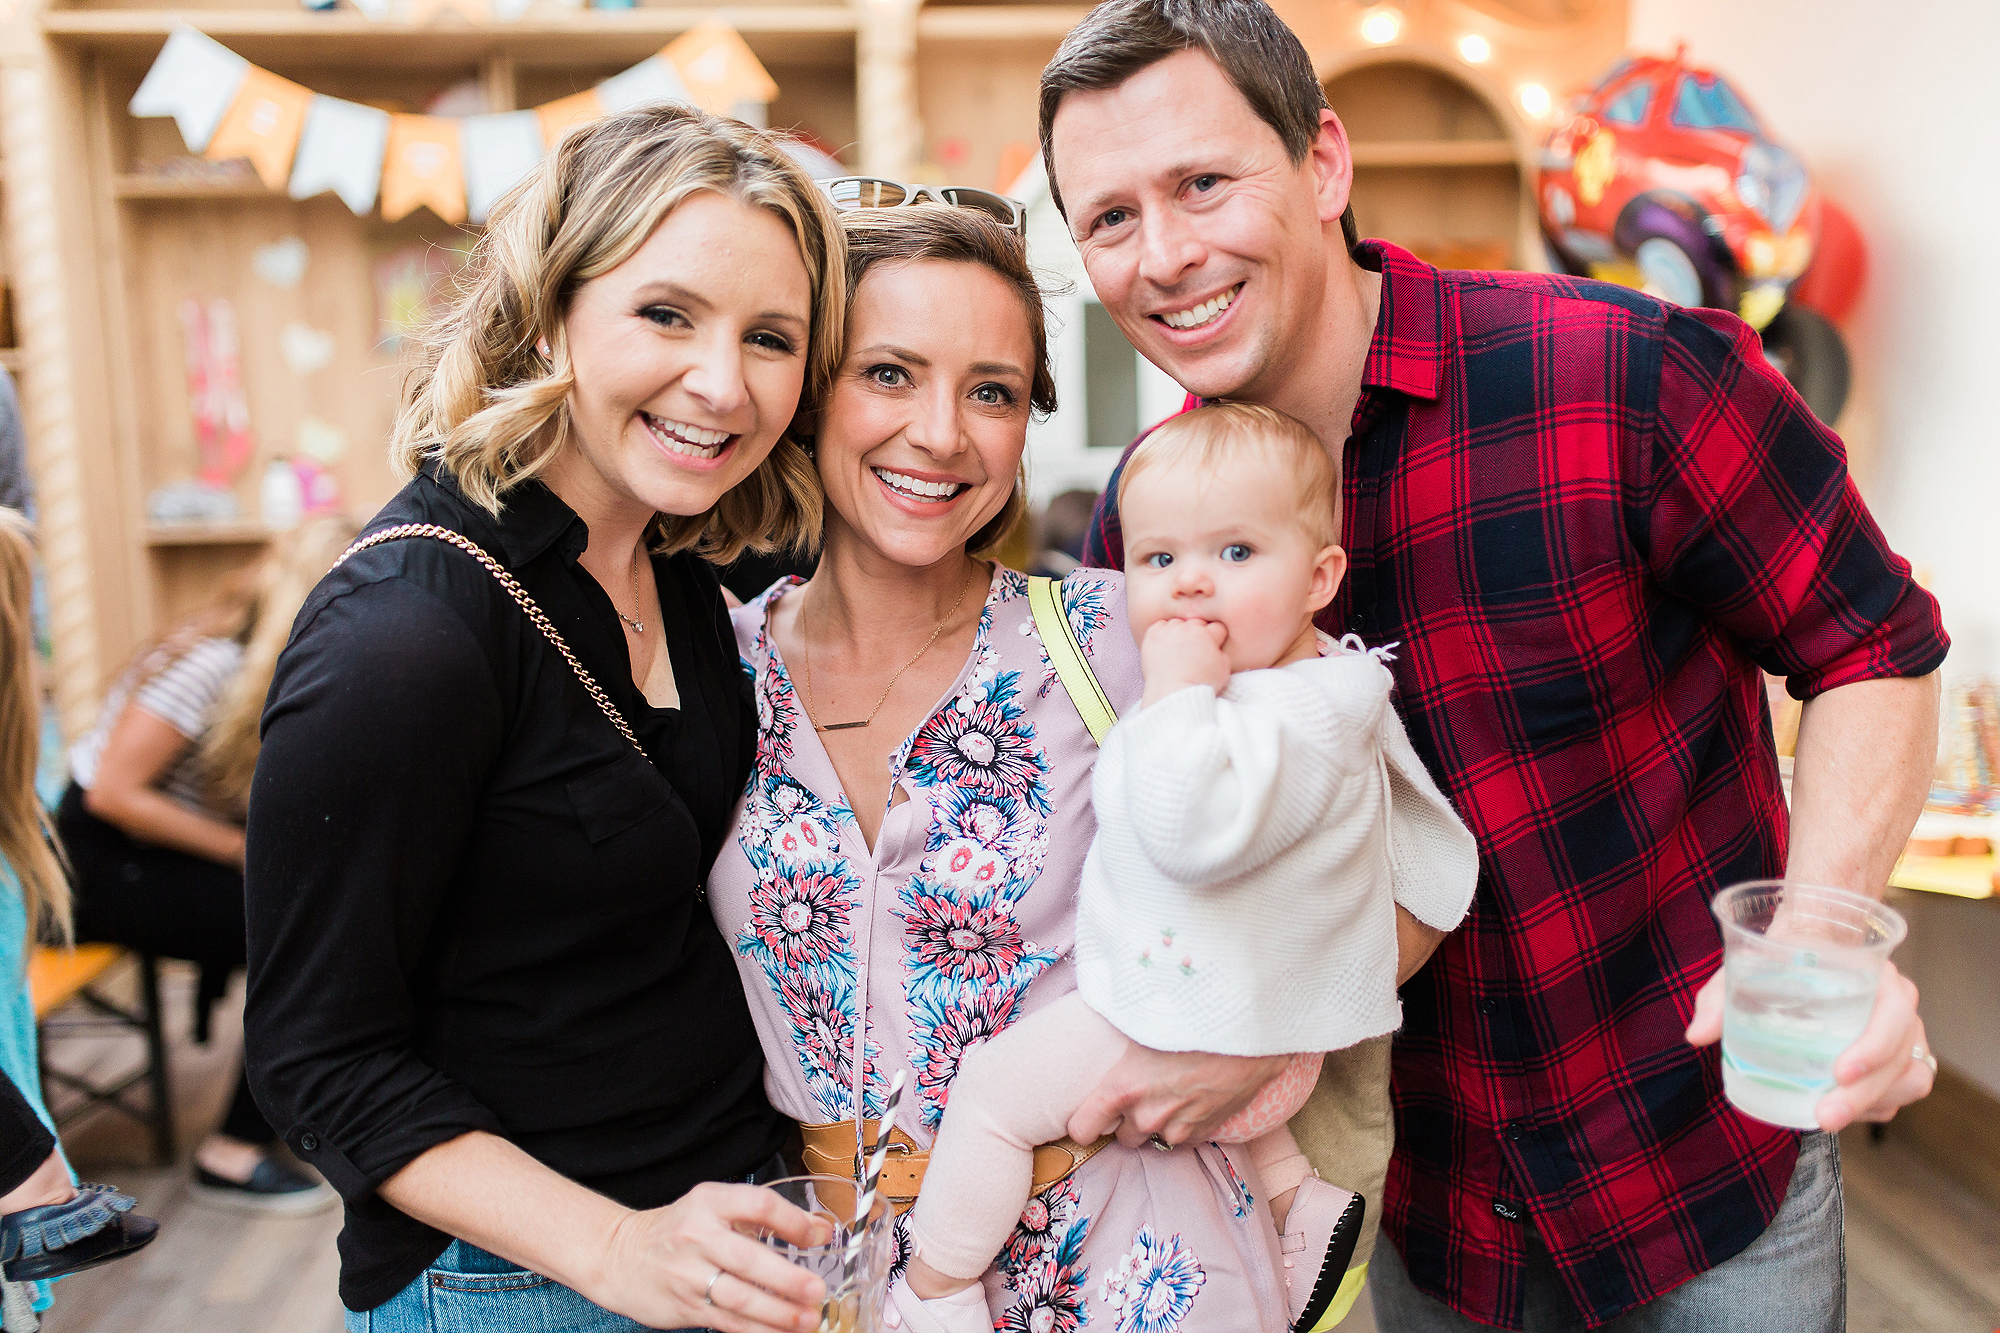 Beverley Mitchell's son Hutton's birthday